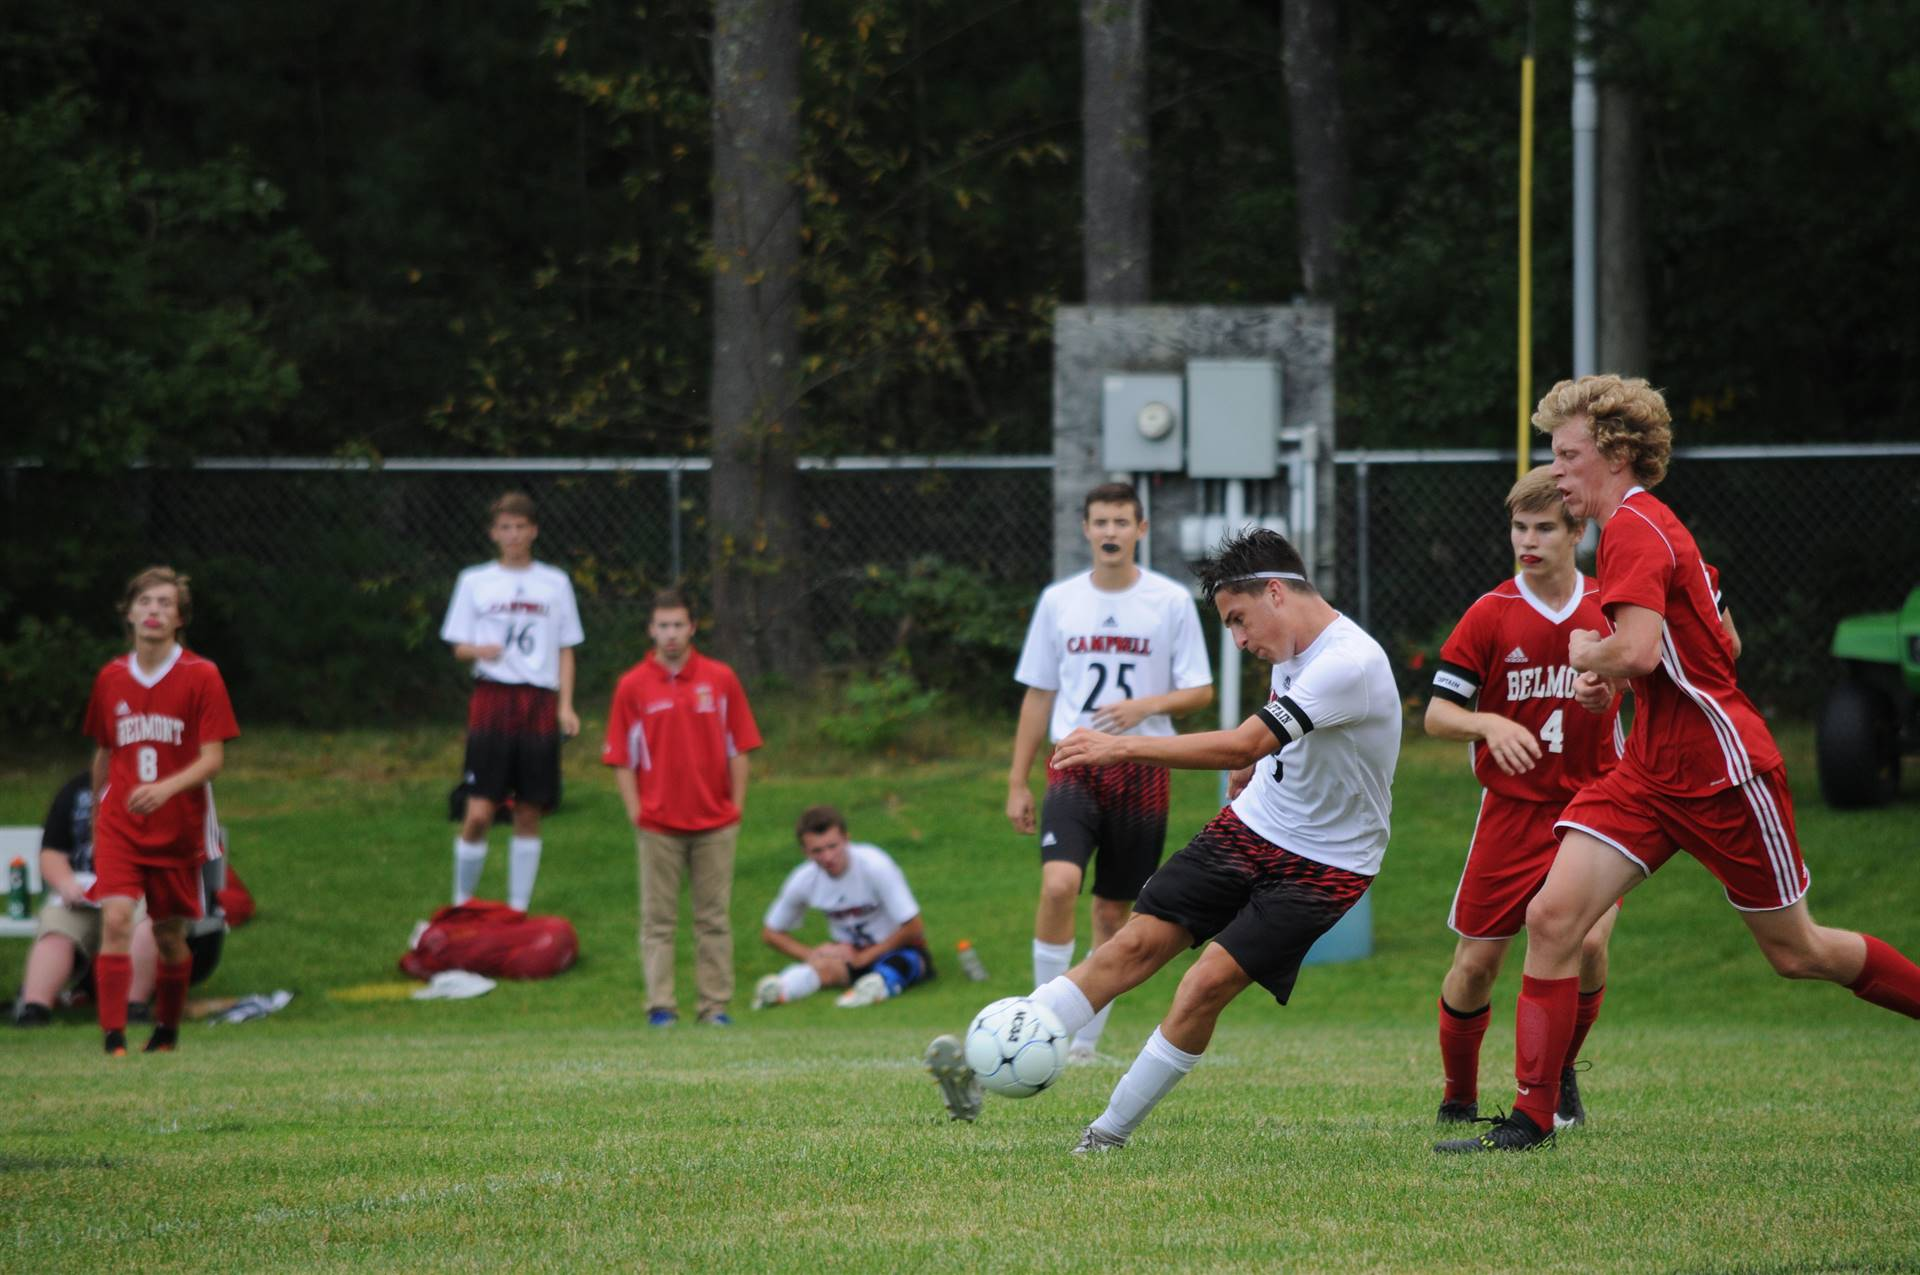 J. Scafidi clearing the ball.